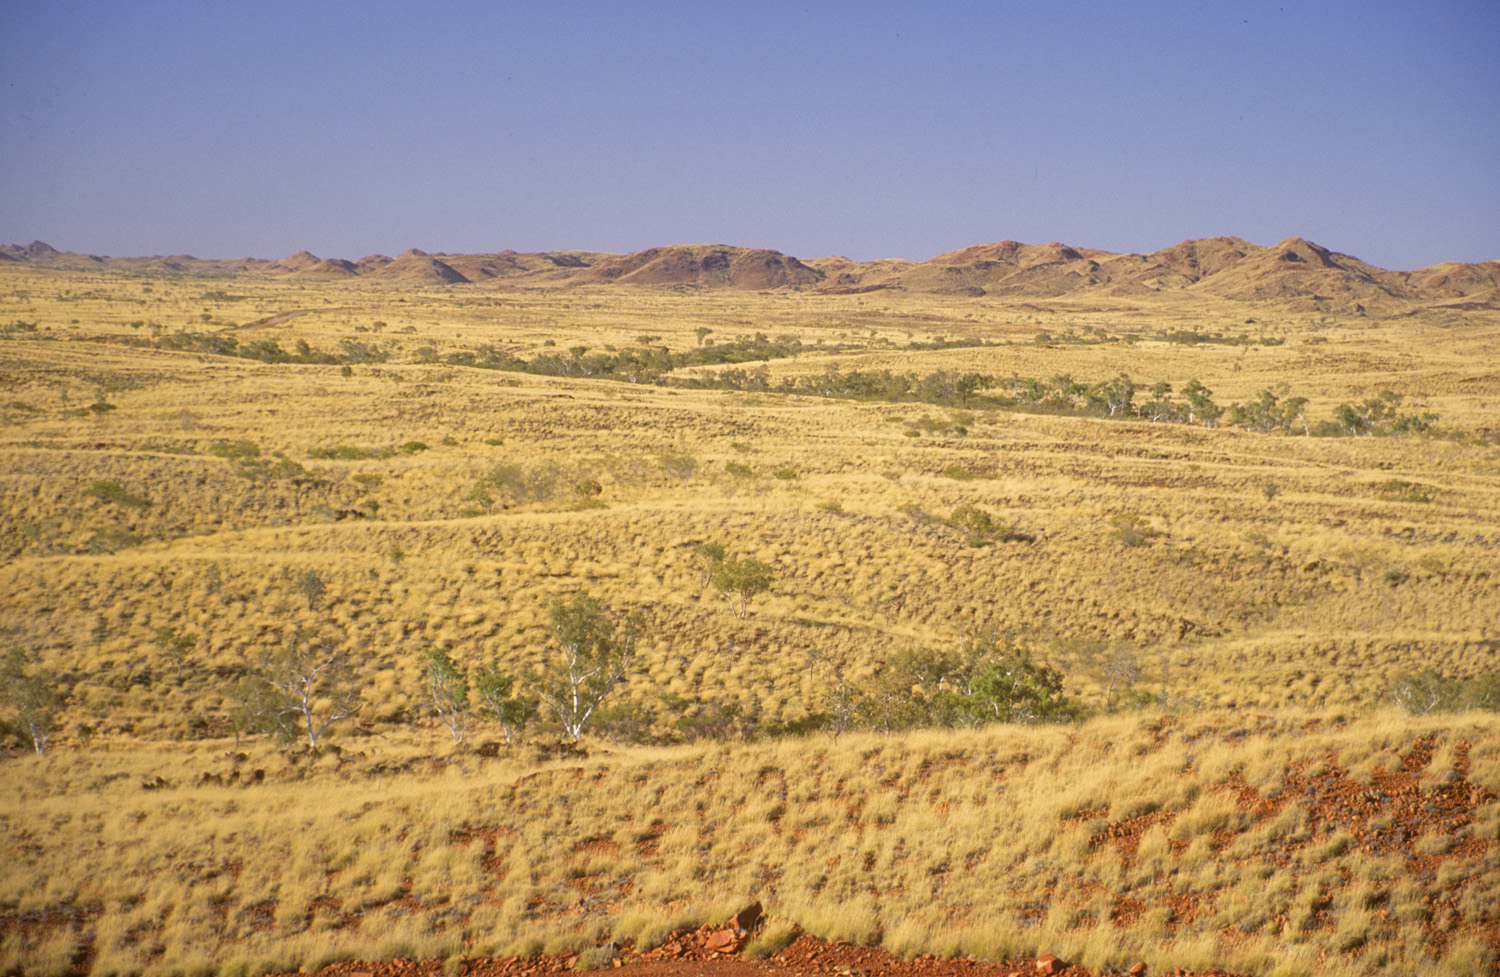 Rolling hills covered in spinifex - near Marble Bar, WA